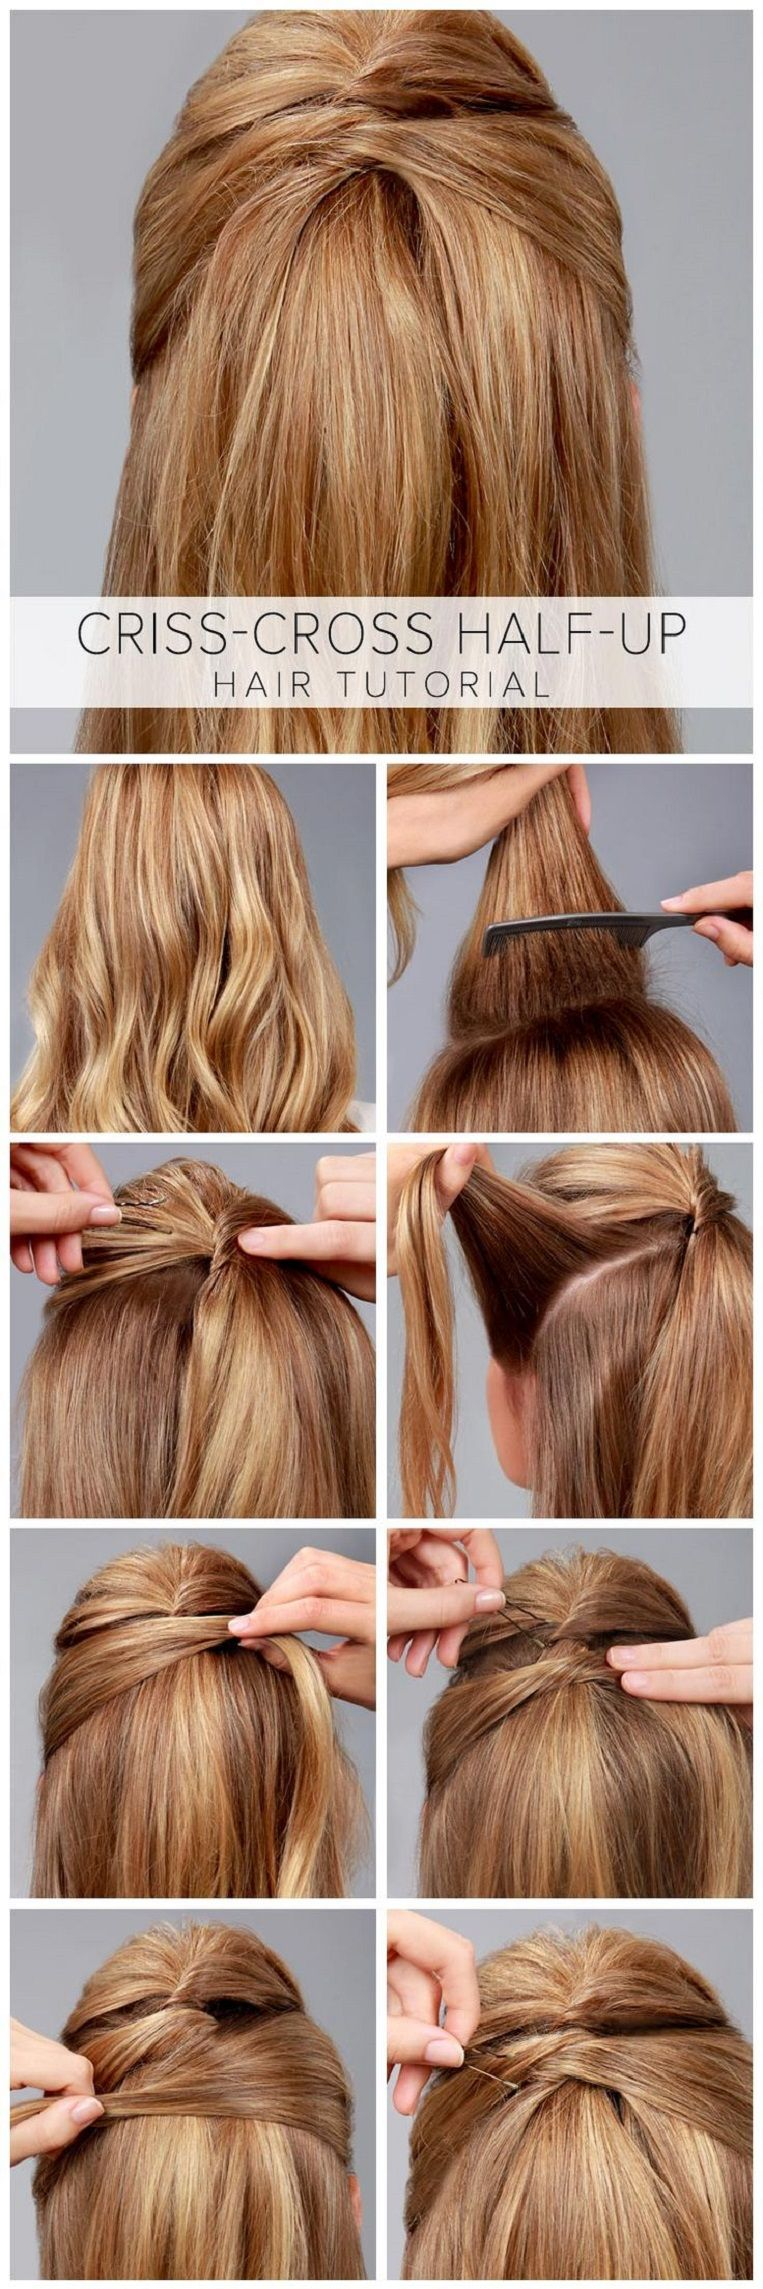 Crisscross halfup hair tutorial easy tutorials to look